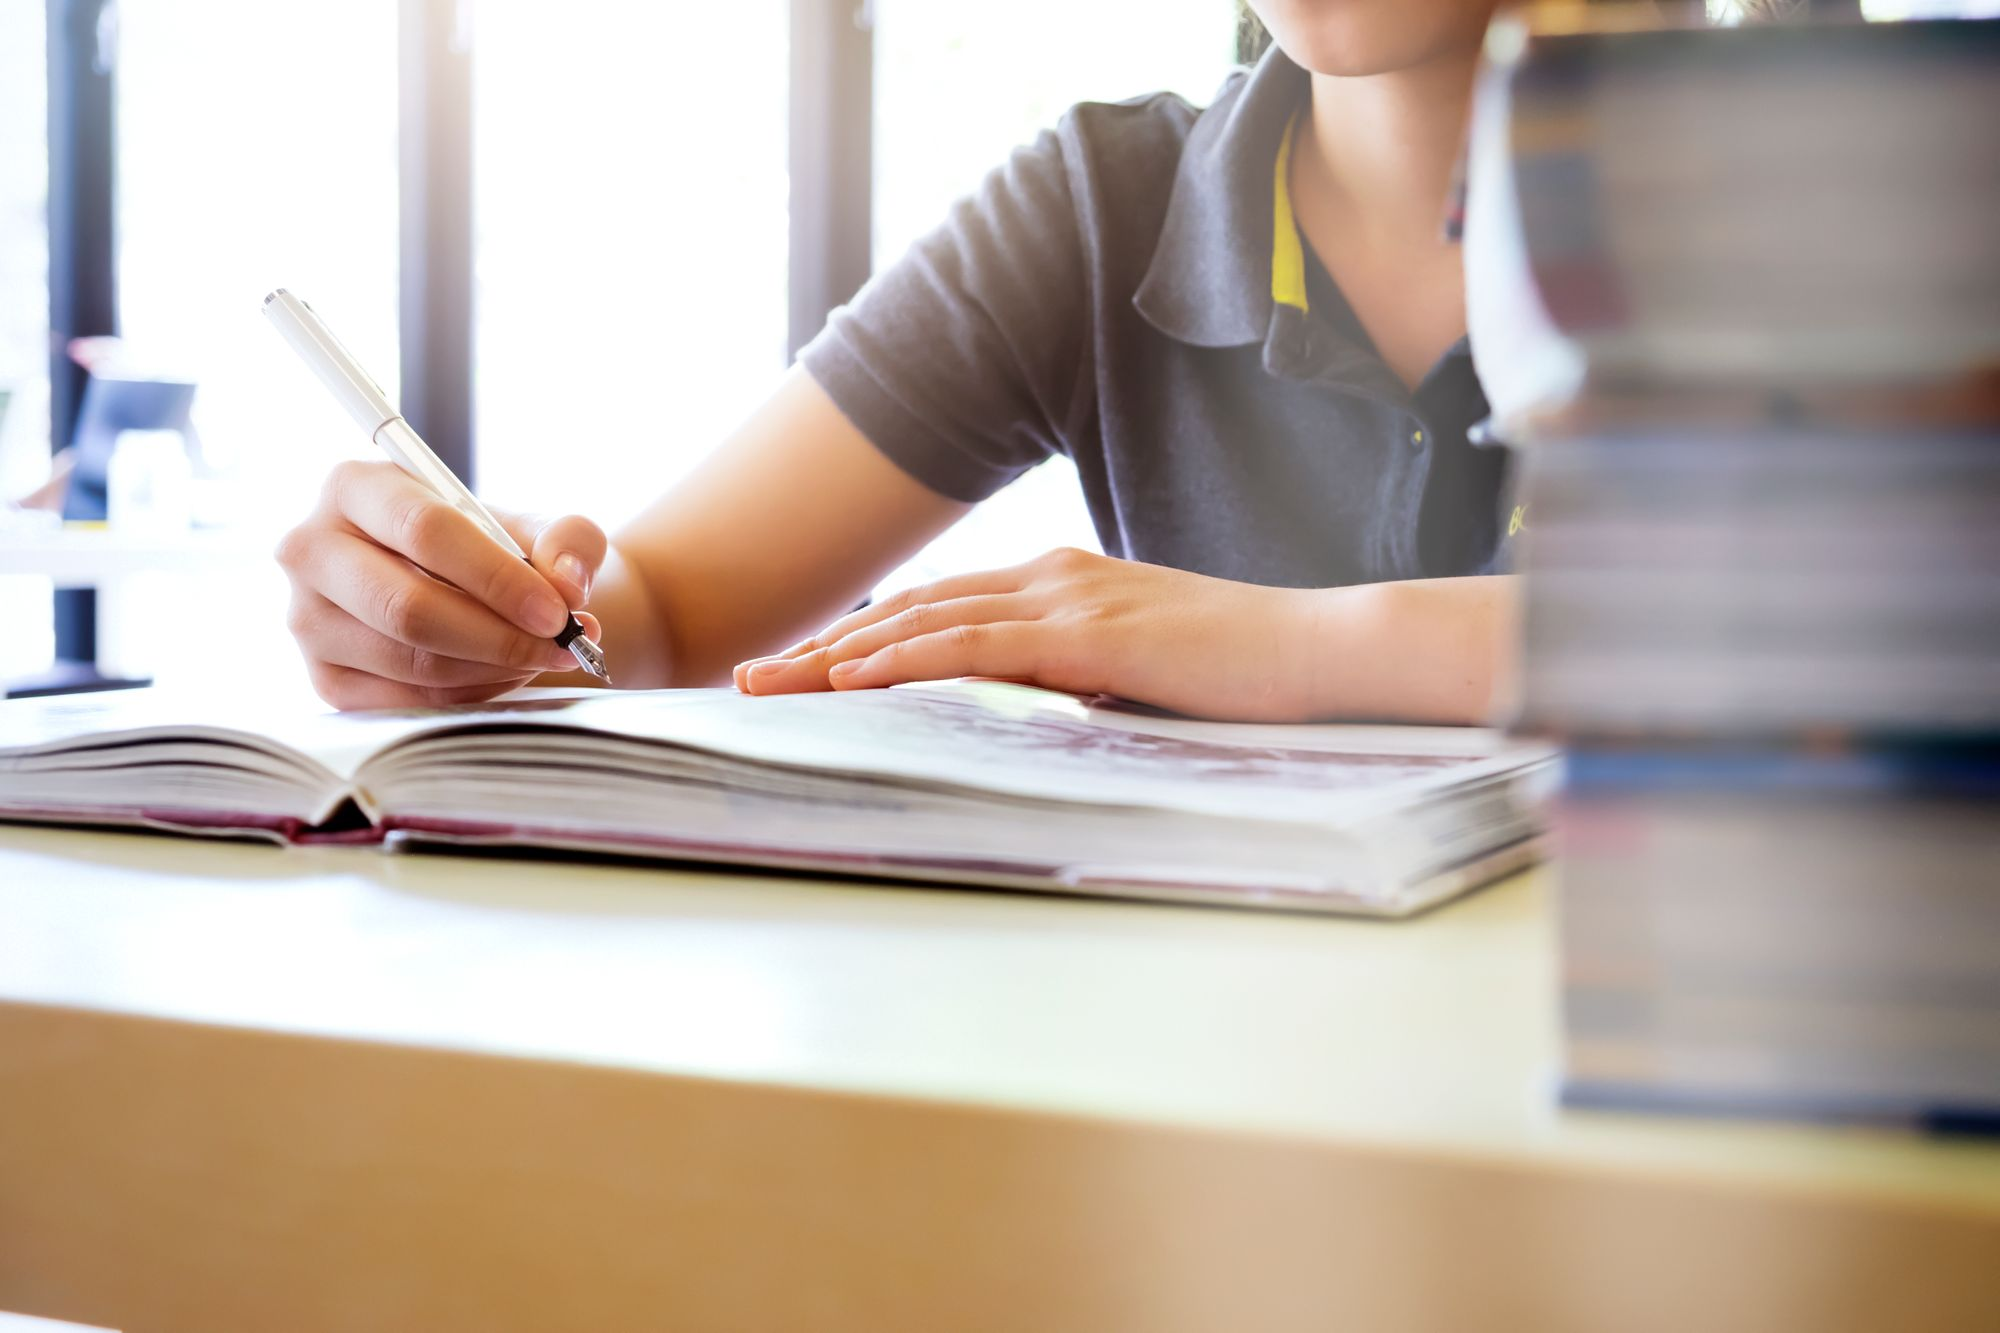 Tips for engineering aspirants to utilize the extended exam period to gain in-depth knowledge